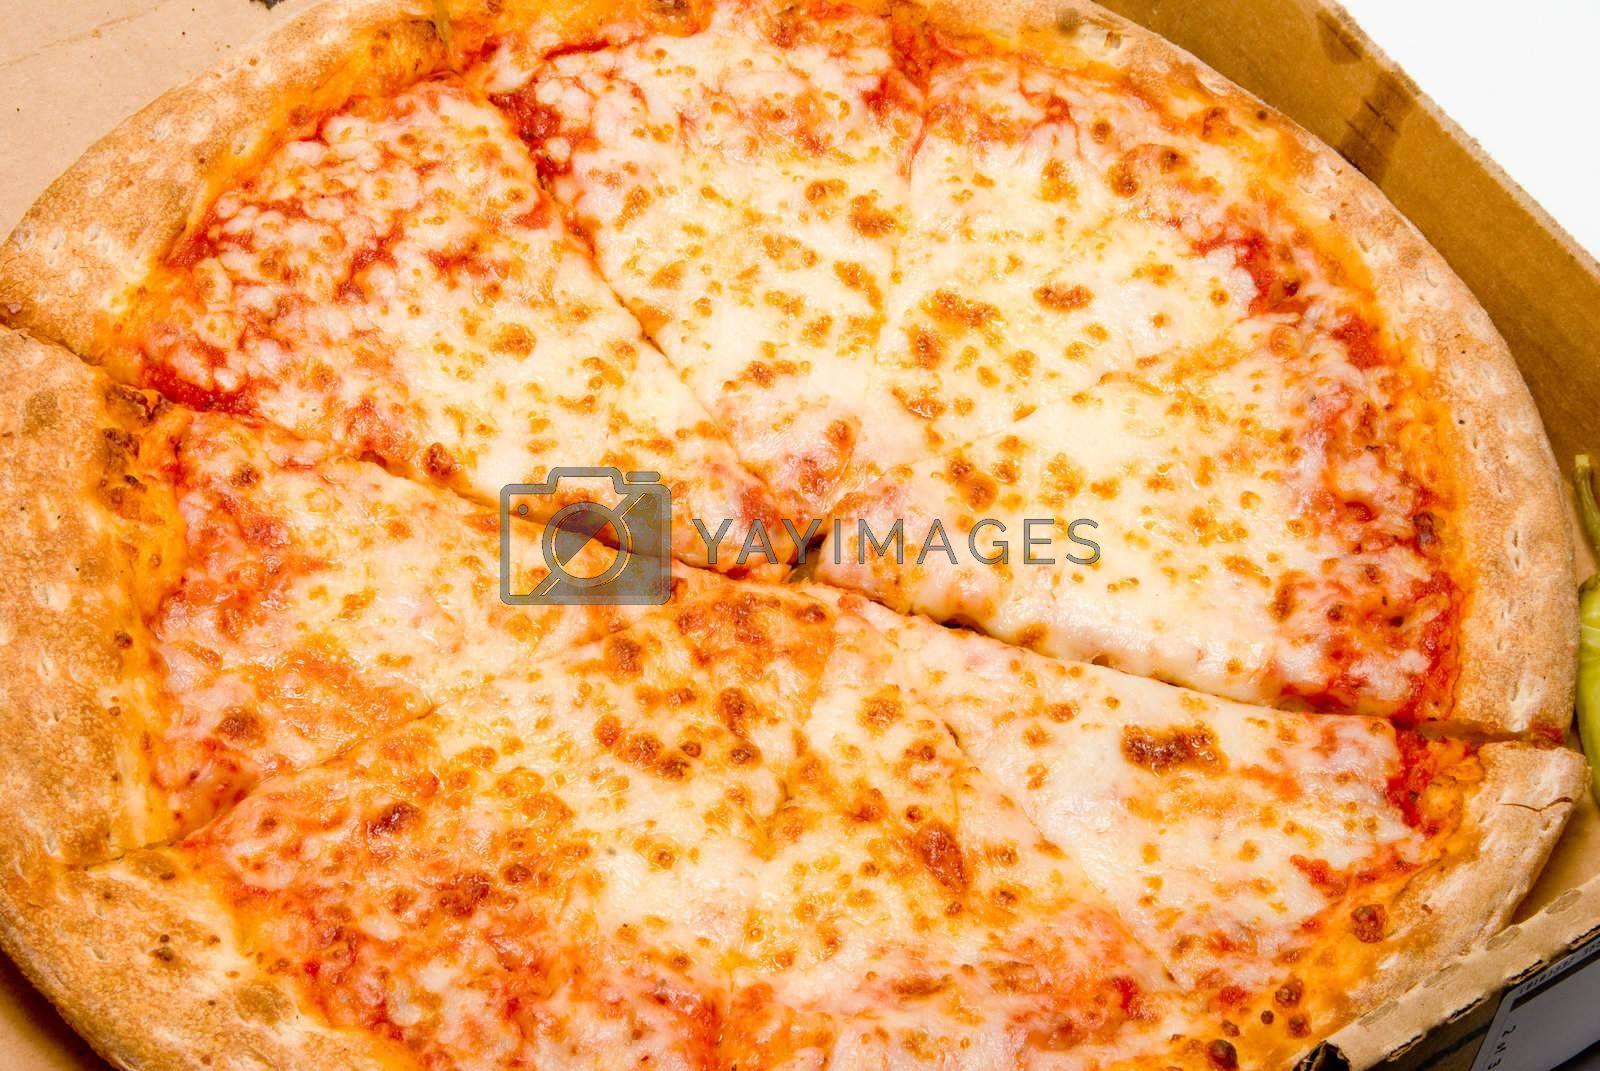 A slice of pizza ready to be eaten.